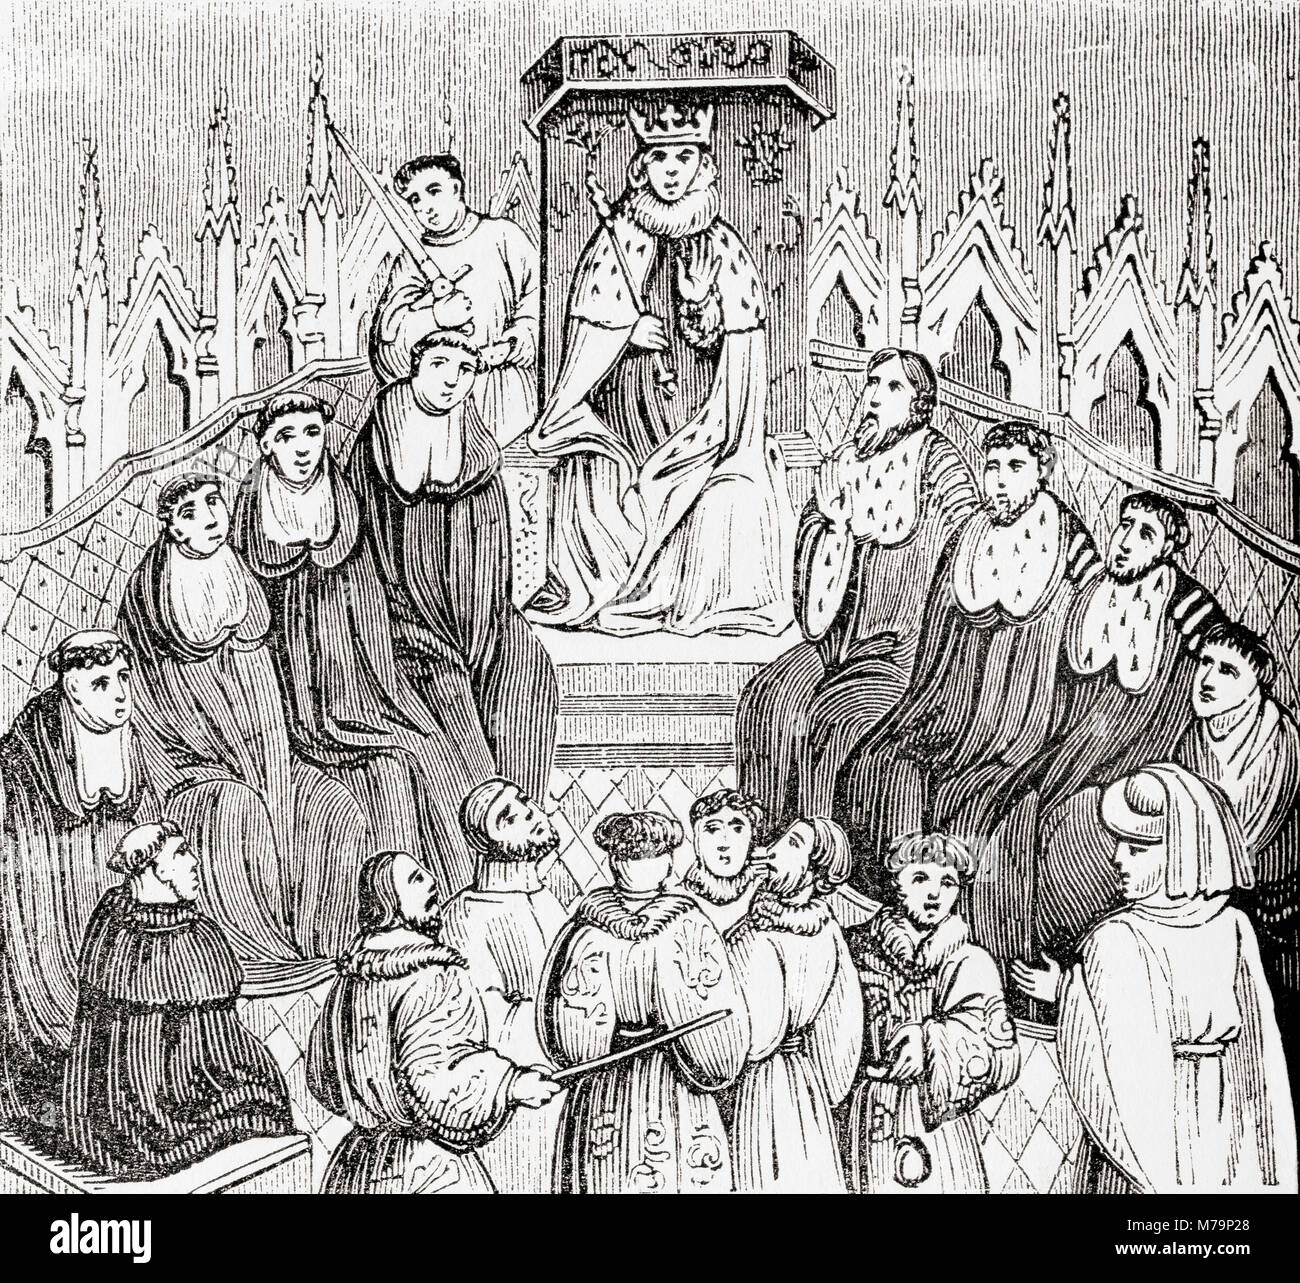 A king in medieval times with his privy council.  From Old England: A Pictorial Museum, published 1847. - Stock Image